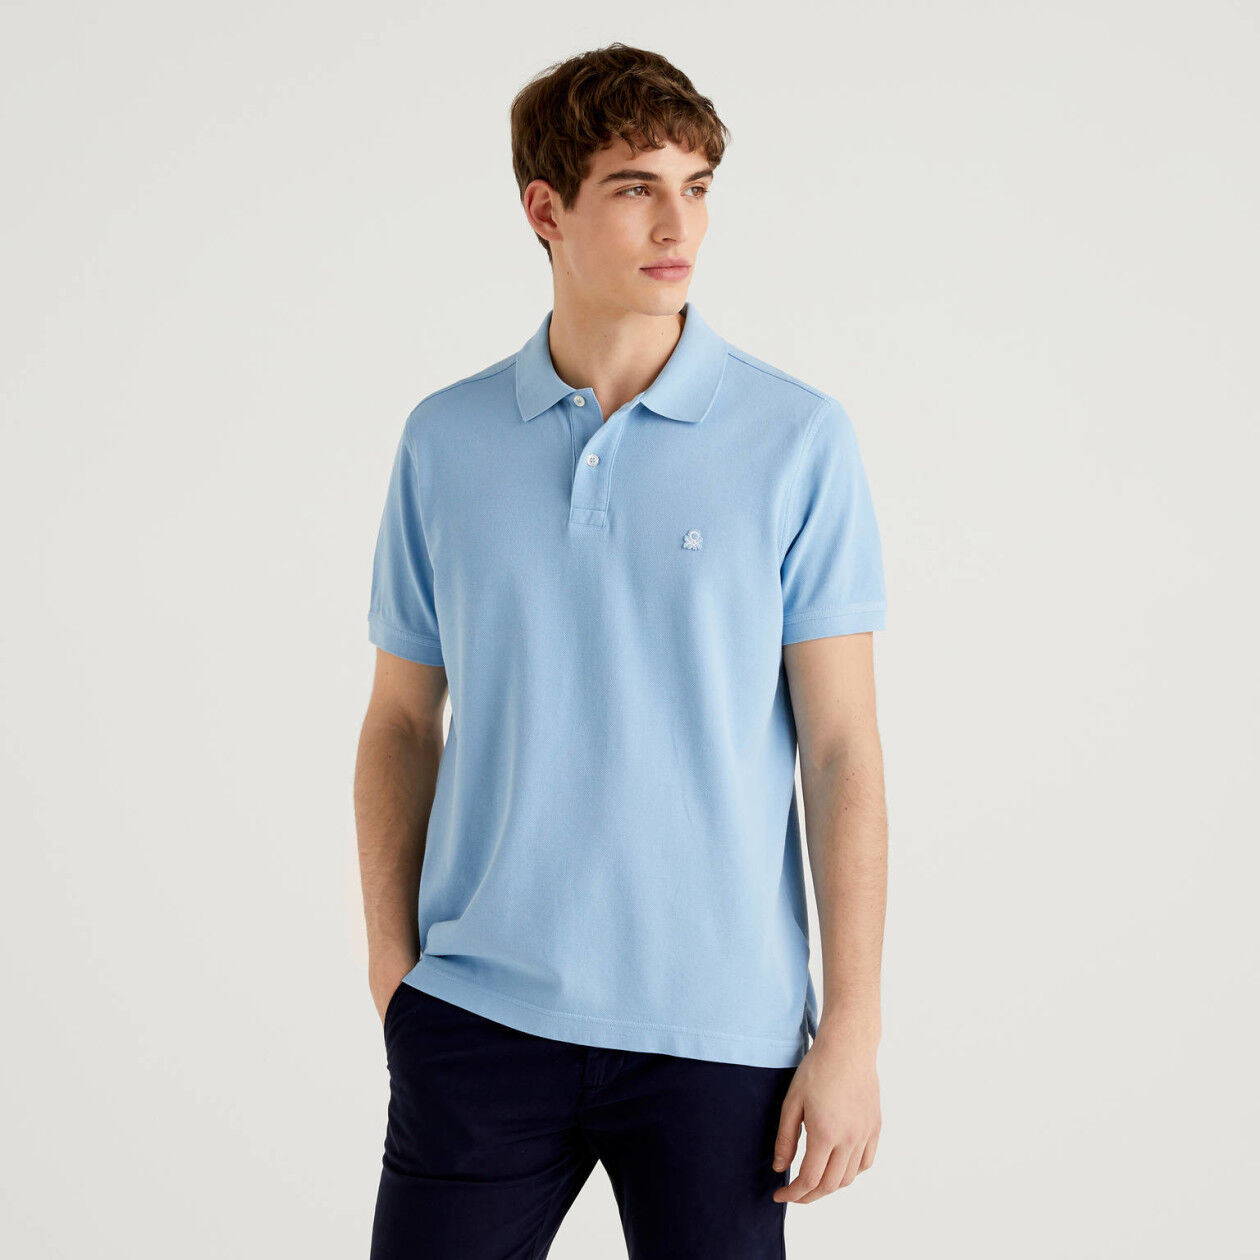 Polo regular fit celeste